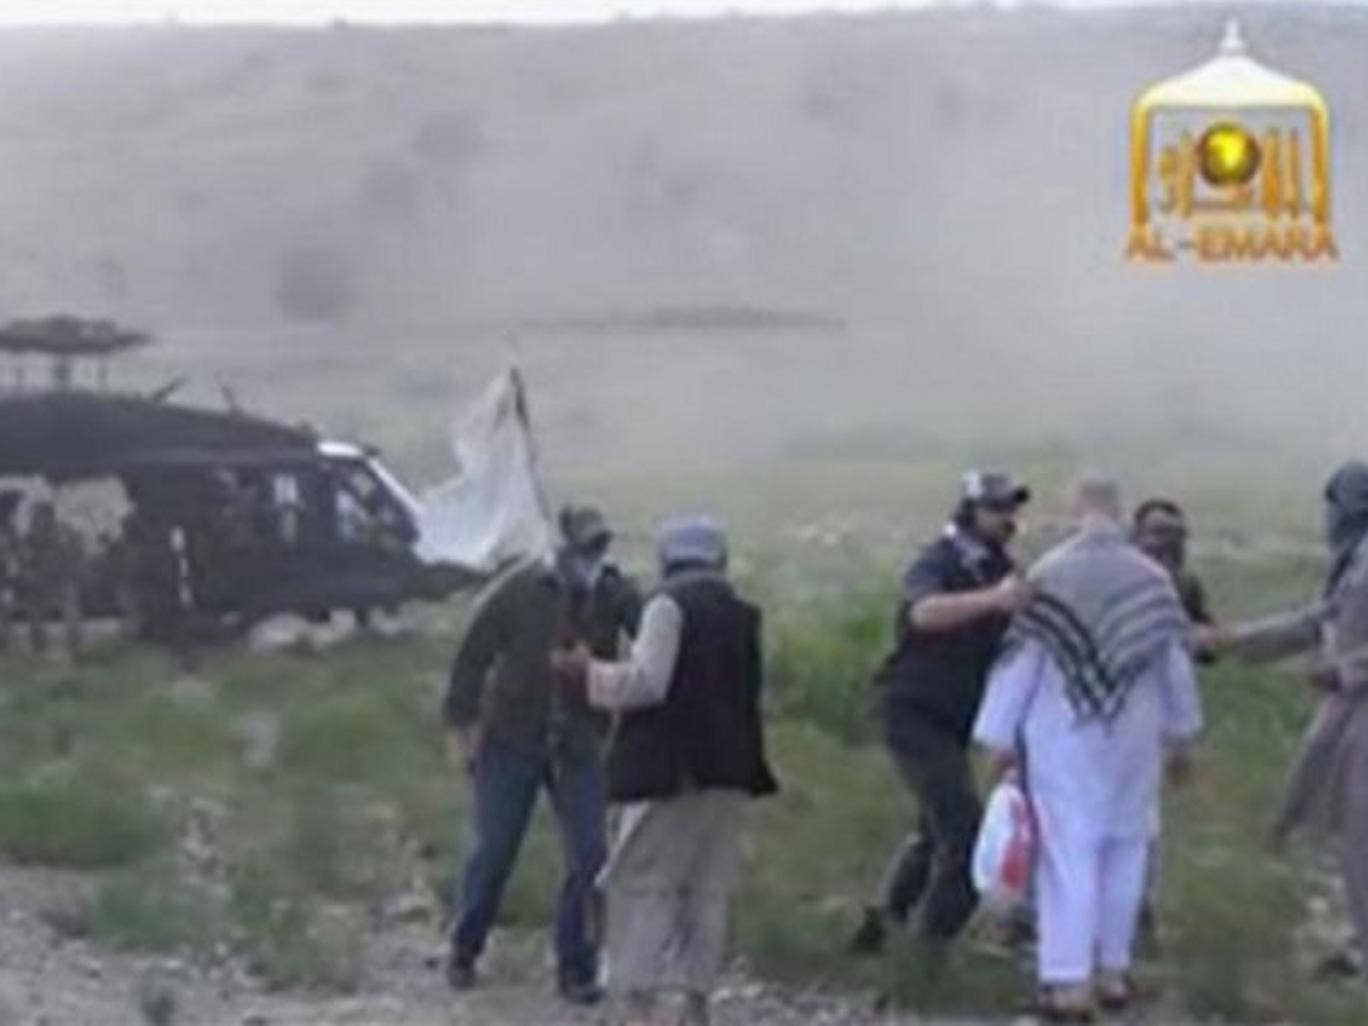 The Taliban has released a video showing the handover of Sergeant Bowe Bergdahl to US Special Forces in eastern Afghanistan, in a smooth exchange that took place in just ten careful seconds